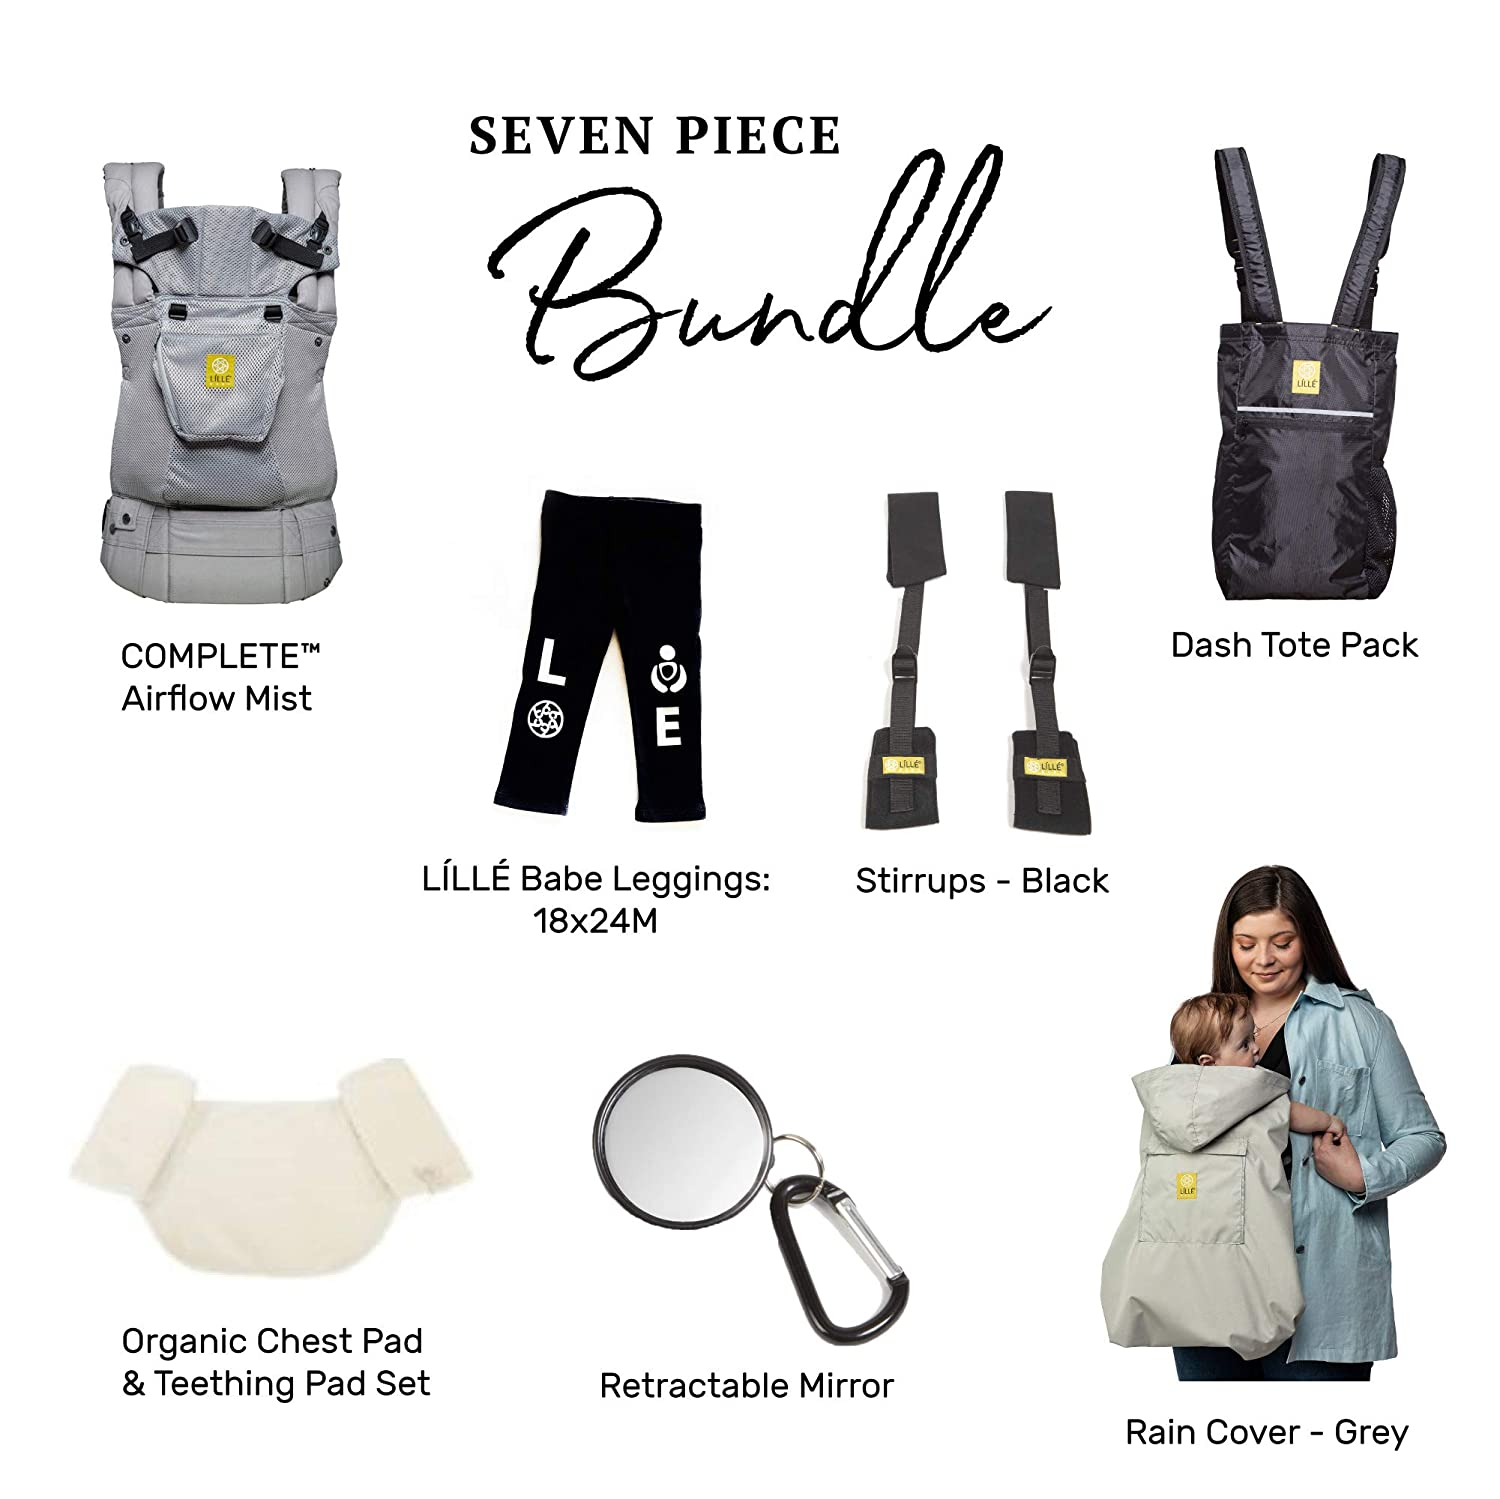 L LL baby Everything Baby Bundle – 7 Items Complete Airflow Ergonomic Baby Child Carrier, Mist Multiple Accessories